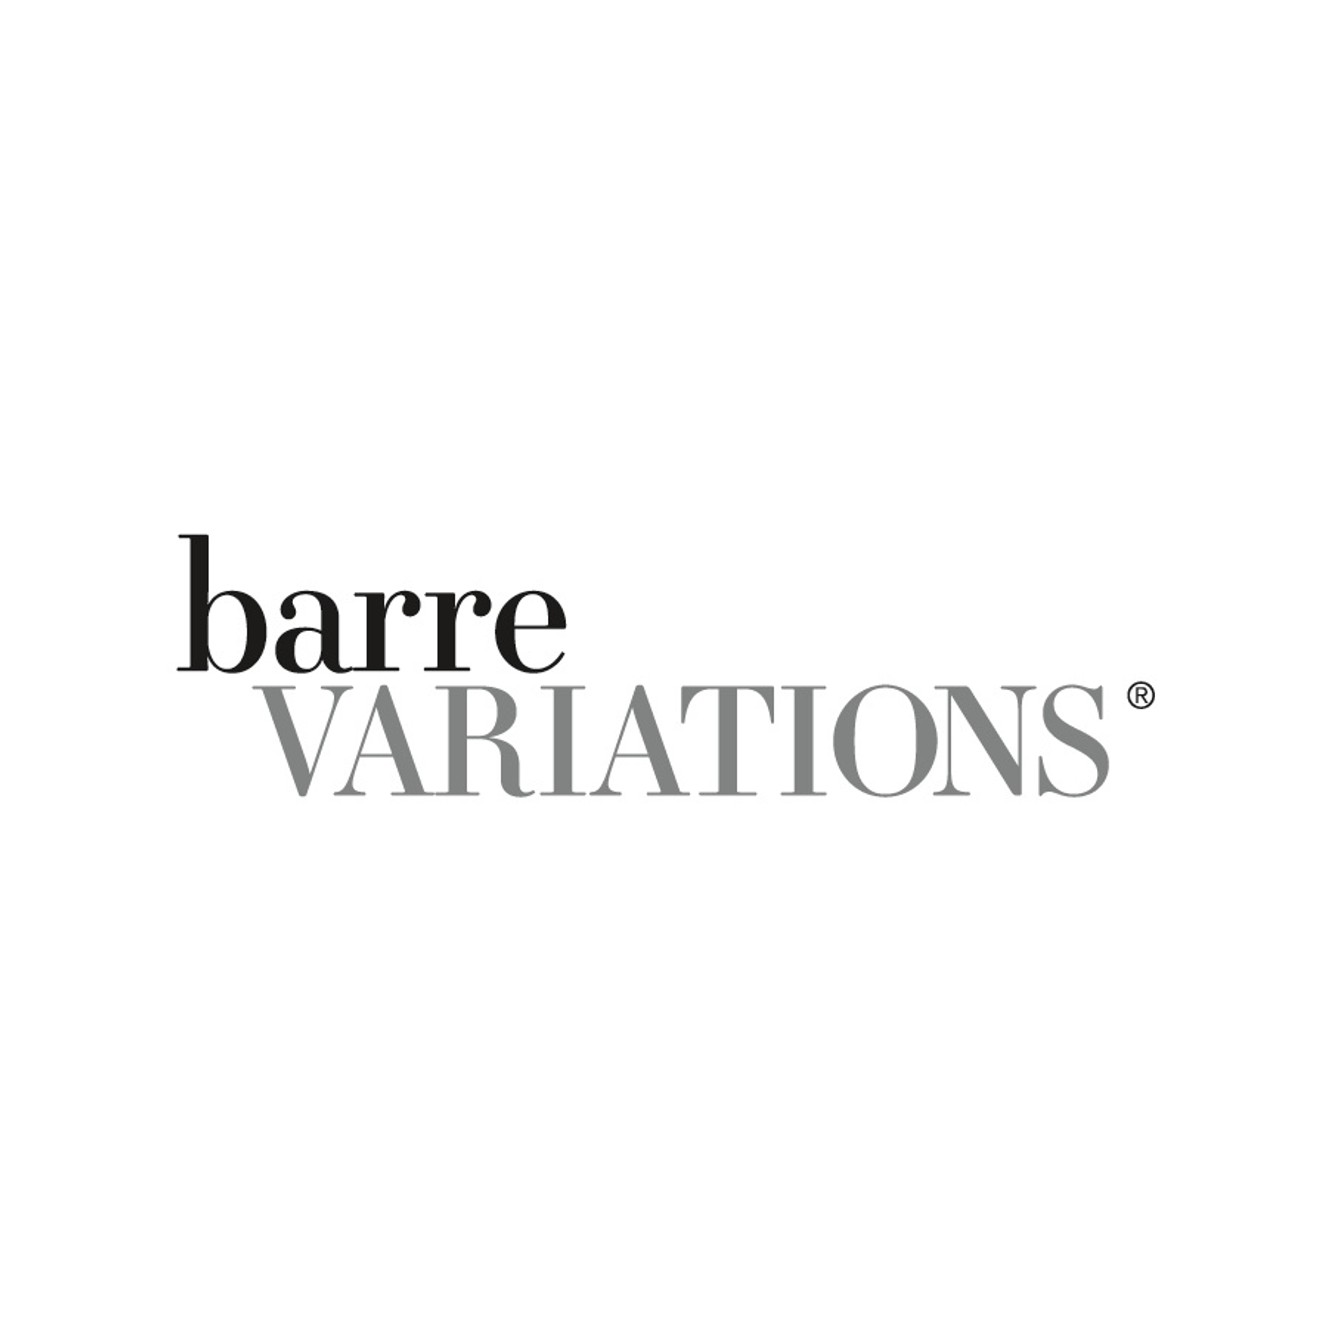 Barre Variations